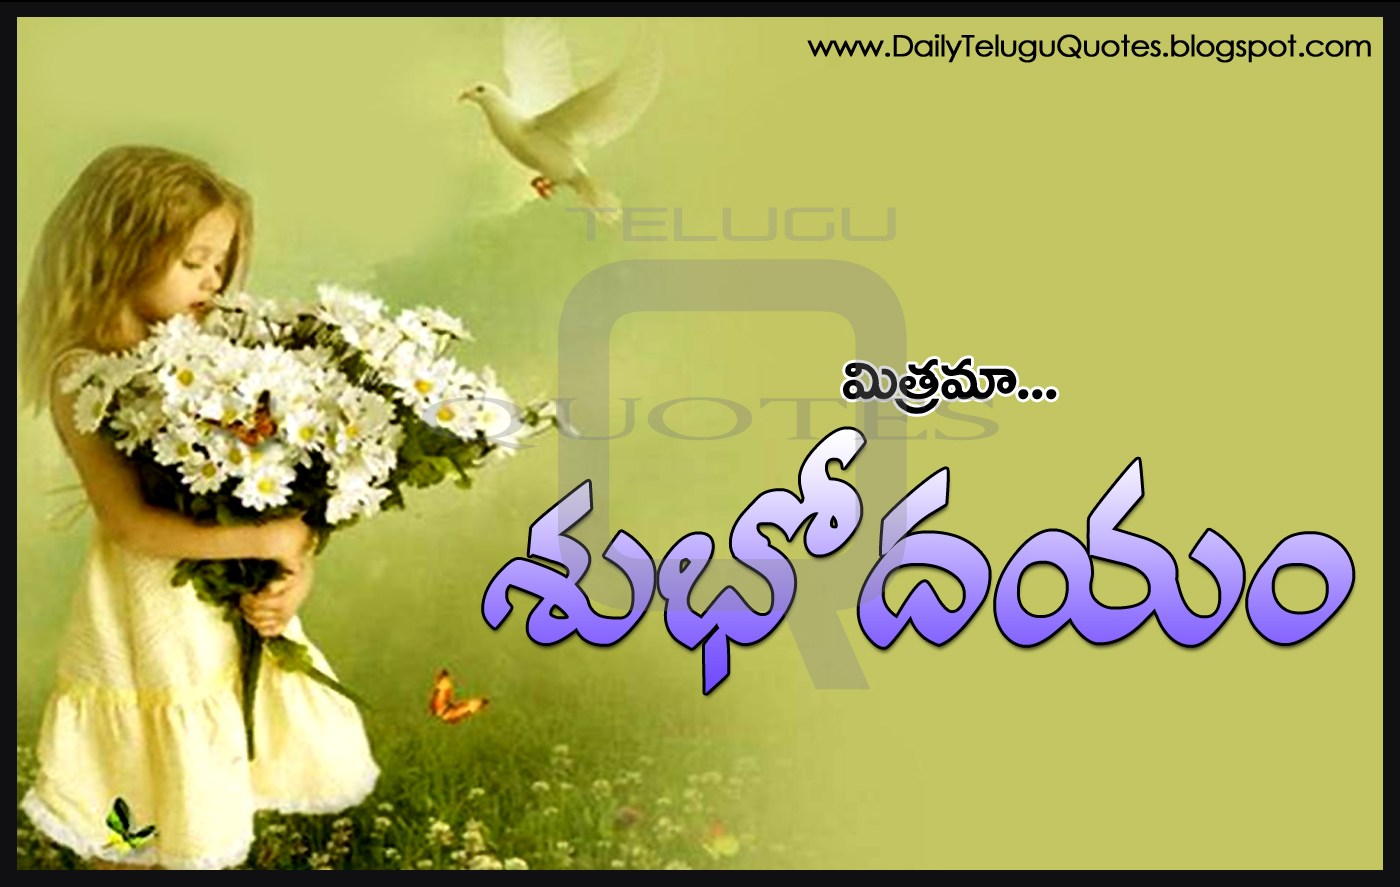 Best good morning quotes hd wallpapers telugu quotes wishes nice telugu good morning quotes wshes life inspirational thoughts m4hsunfo